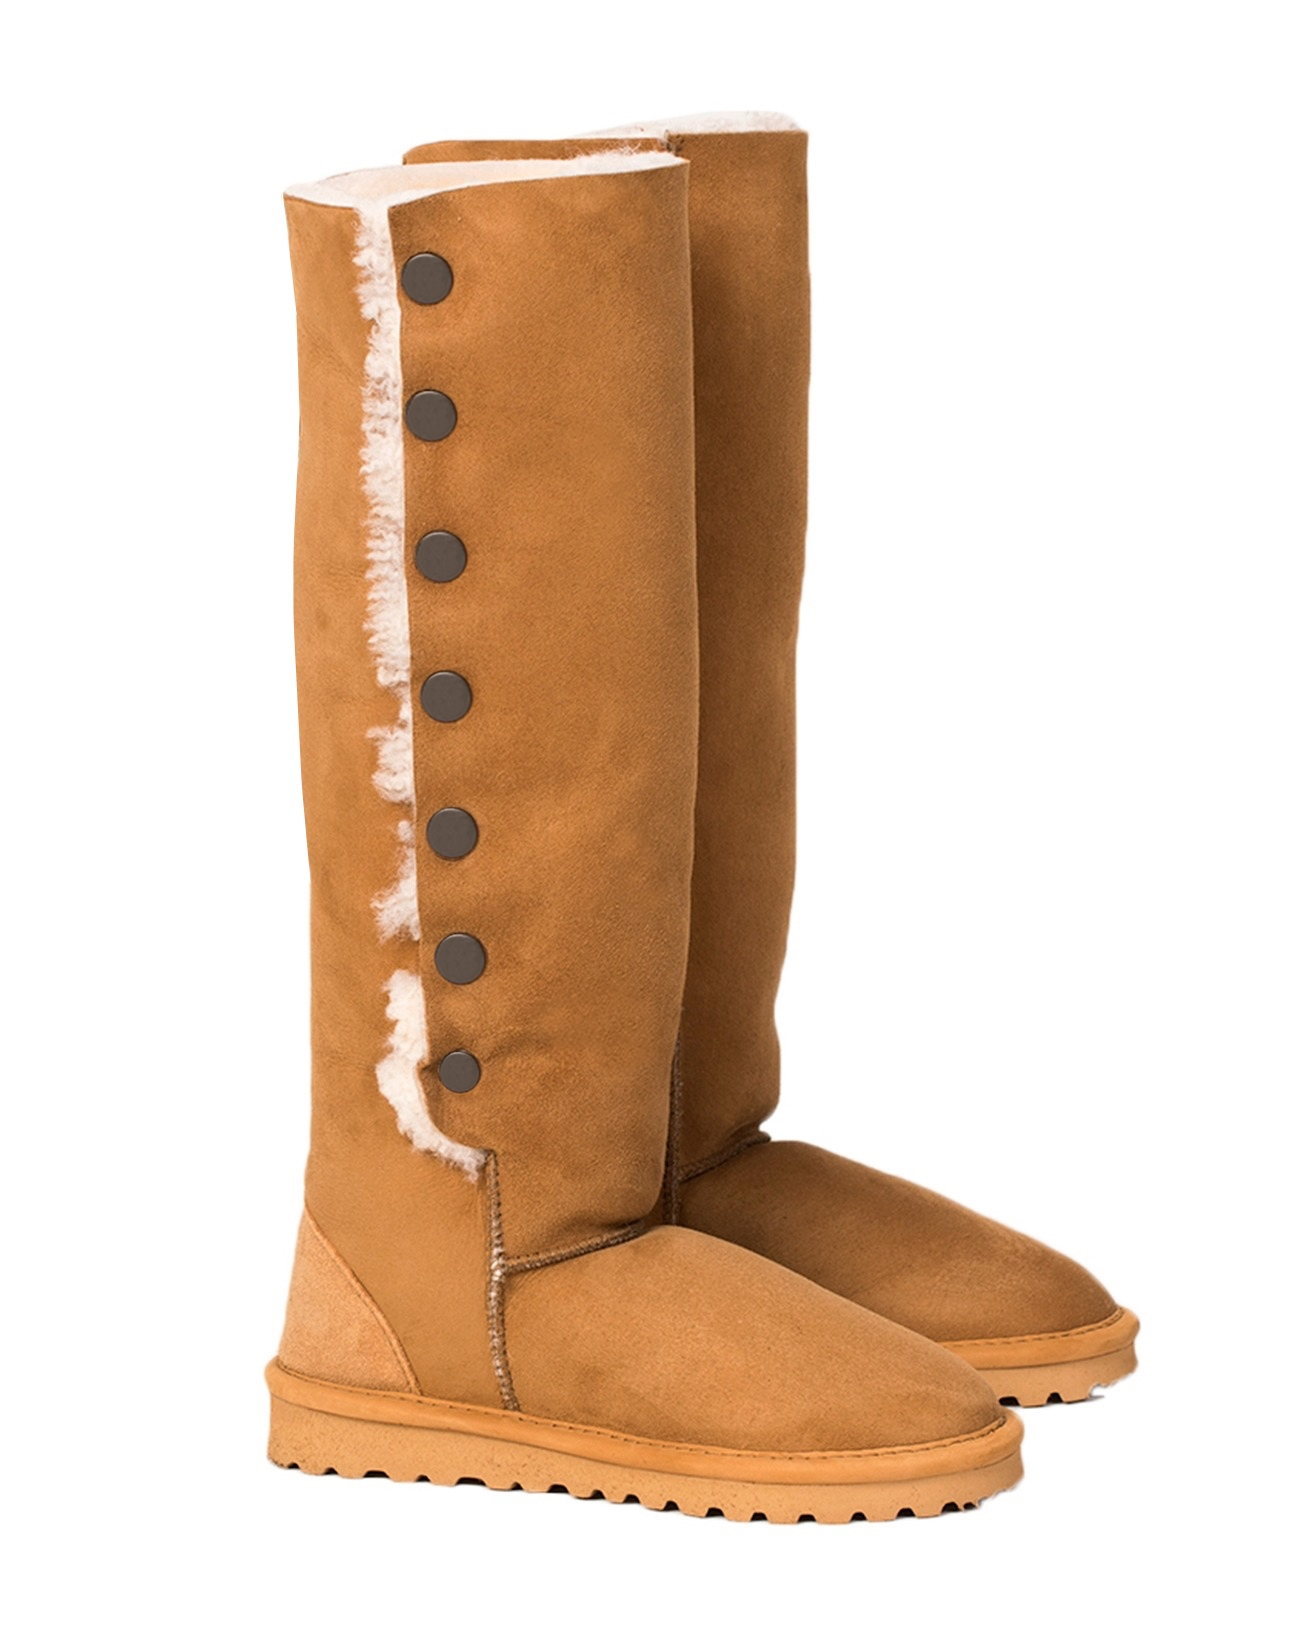 a4abf0b3a7d Popper Boots - Knee Height. Double tap to zoom